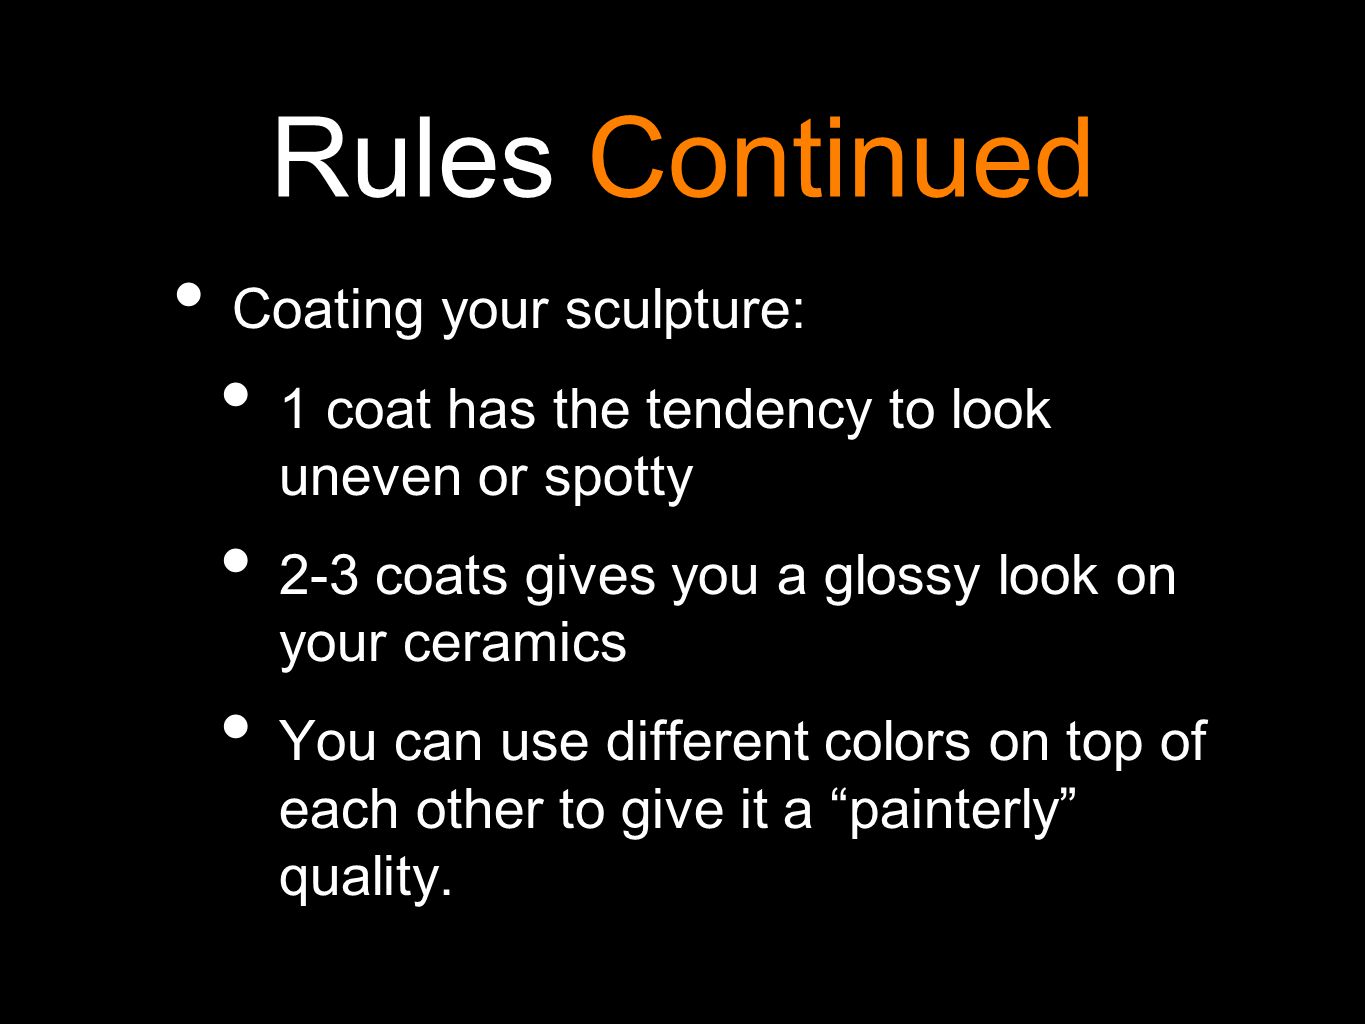 Rules Continued Coating your sculpture: 1 coat has the tendency to look uneven or spotty 2-3 coats gives you a glossy look on your ceramics You can use different colors on top of each other to give it a painterly quality.